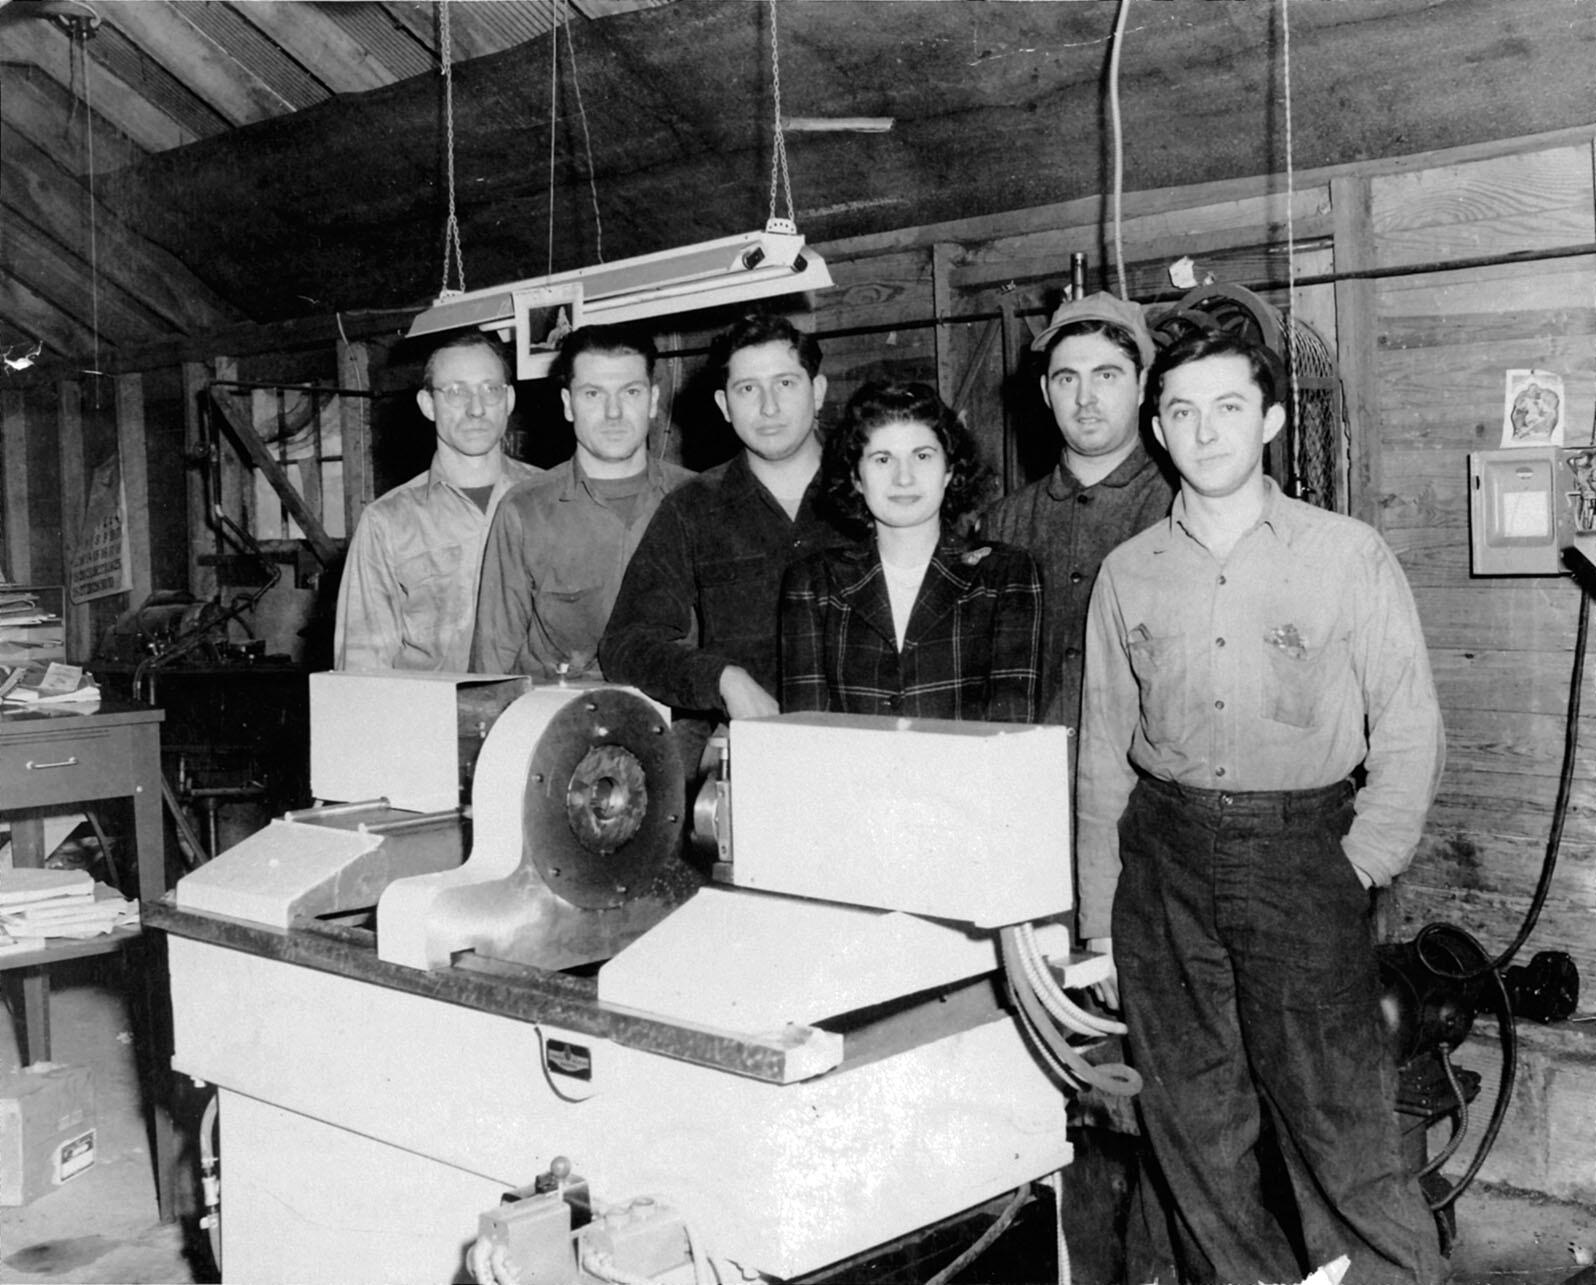 In a converted barn, Stan Ovshinsky (third from left) and his crew pose with his newly invented Benjamin Automatic Lathe in 1946. (Photo courtesy of Lillian Hoddeson and Peter Garrett.)